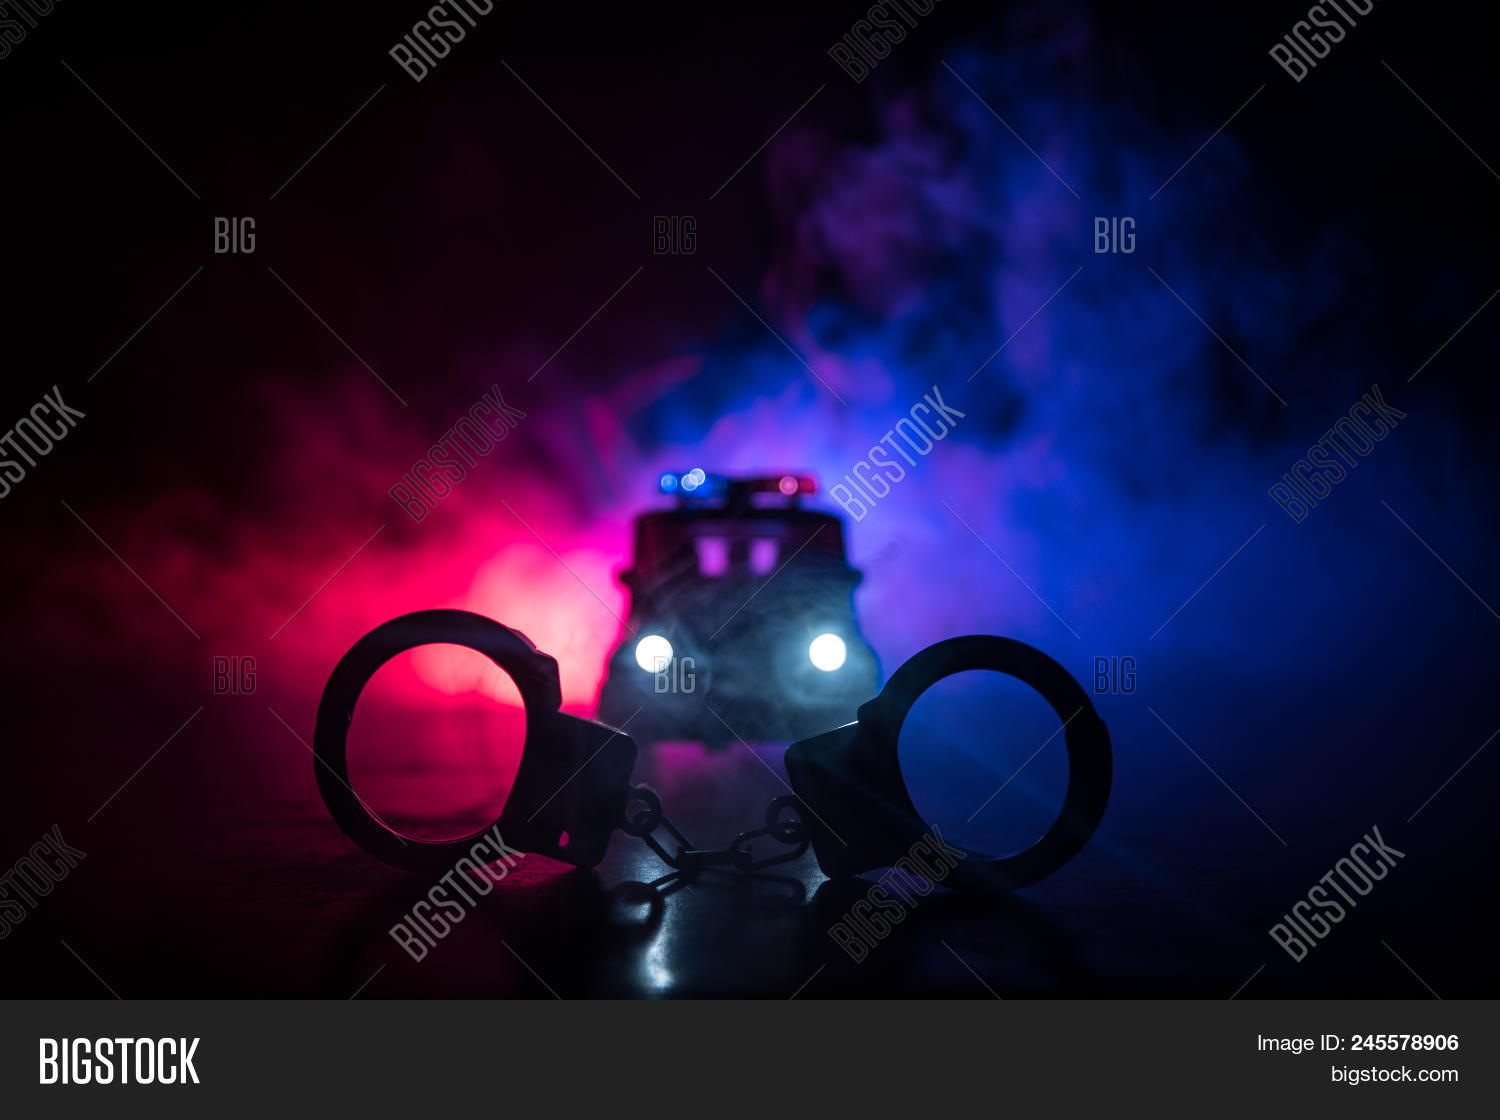 Closed Handcuffs On Image Photo Free Trial Bigstock